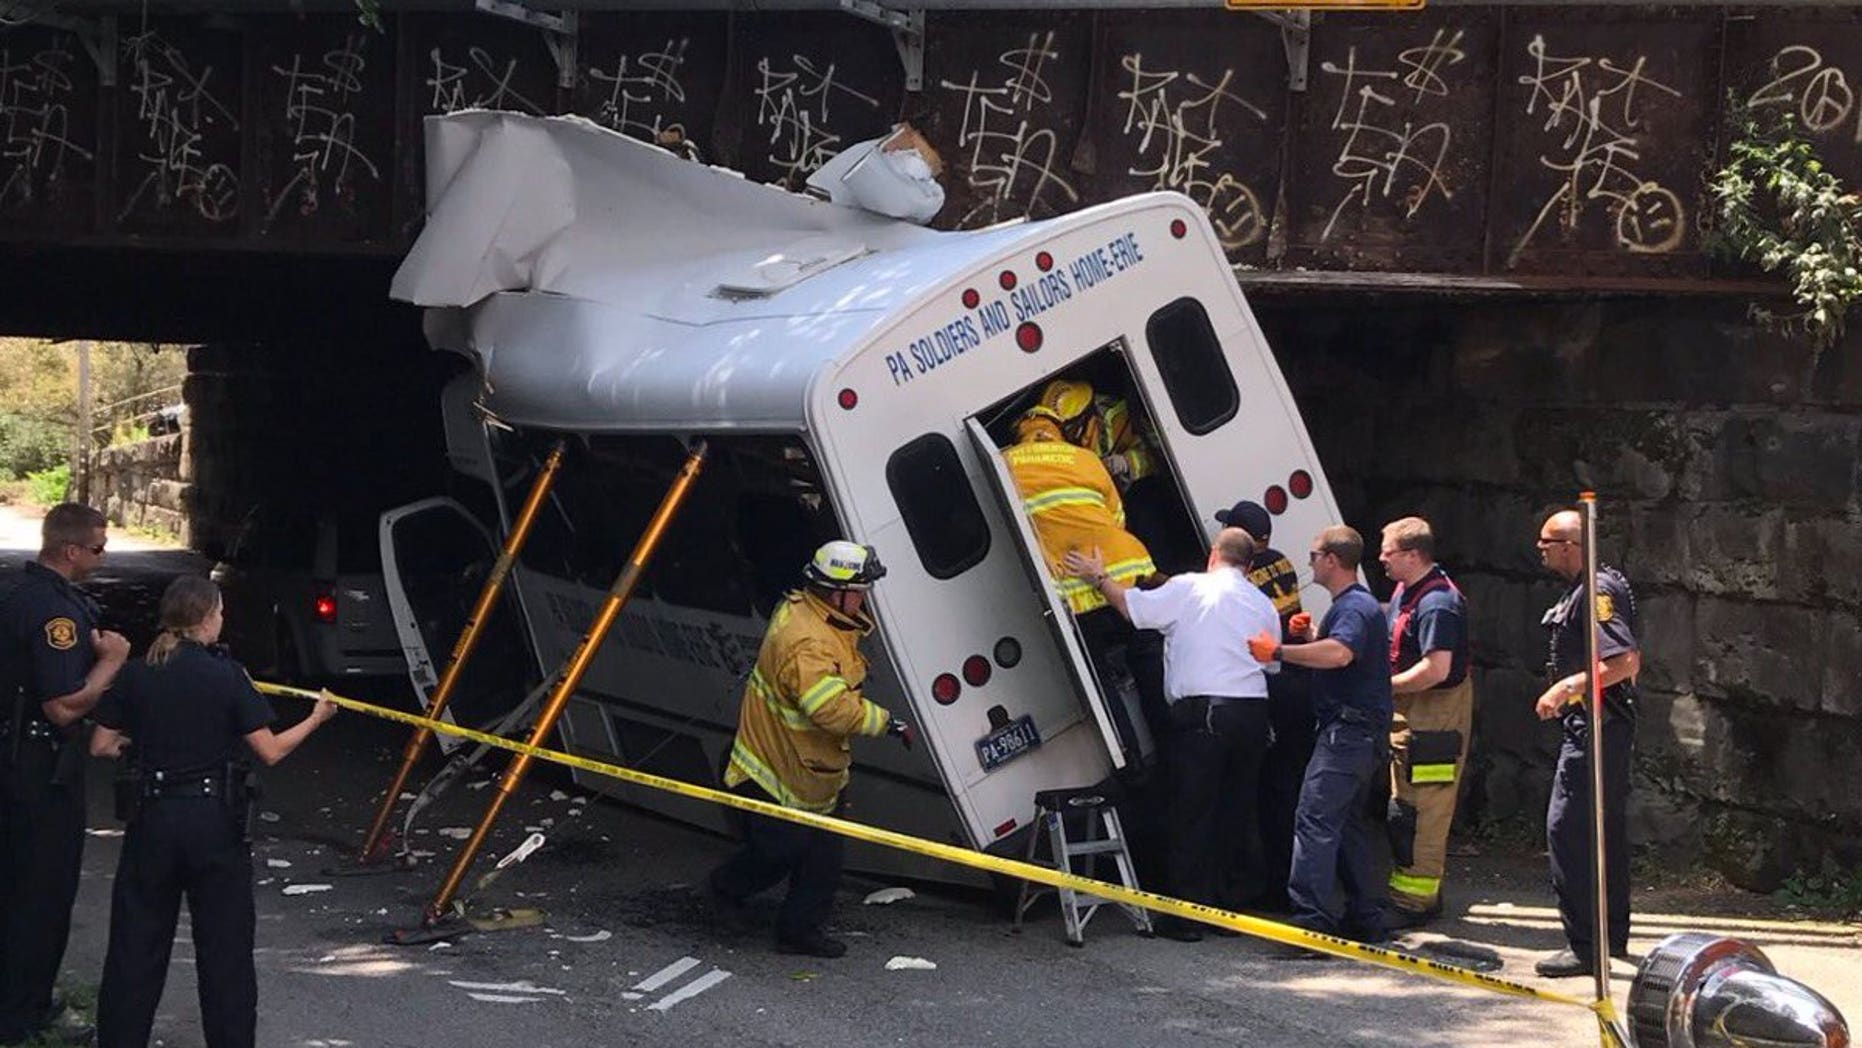 The bus carrying veterans crashed around 12 p.m. Thursday in Pittsburgh. (Pittsburgh police department)